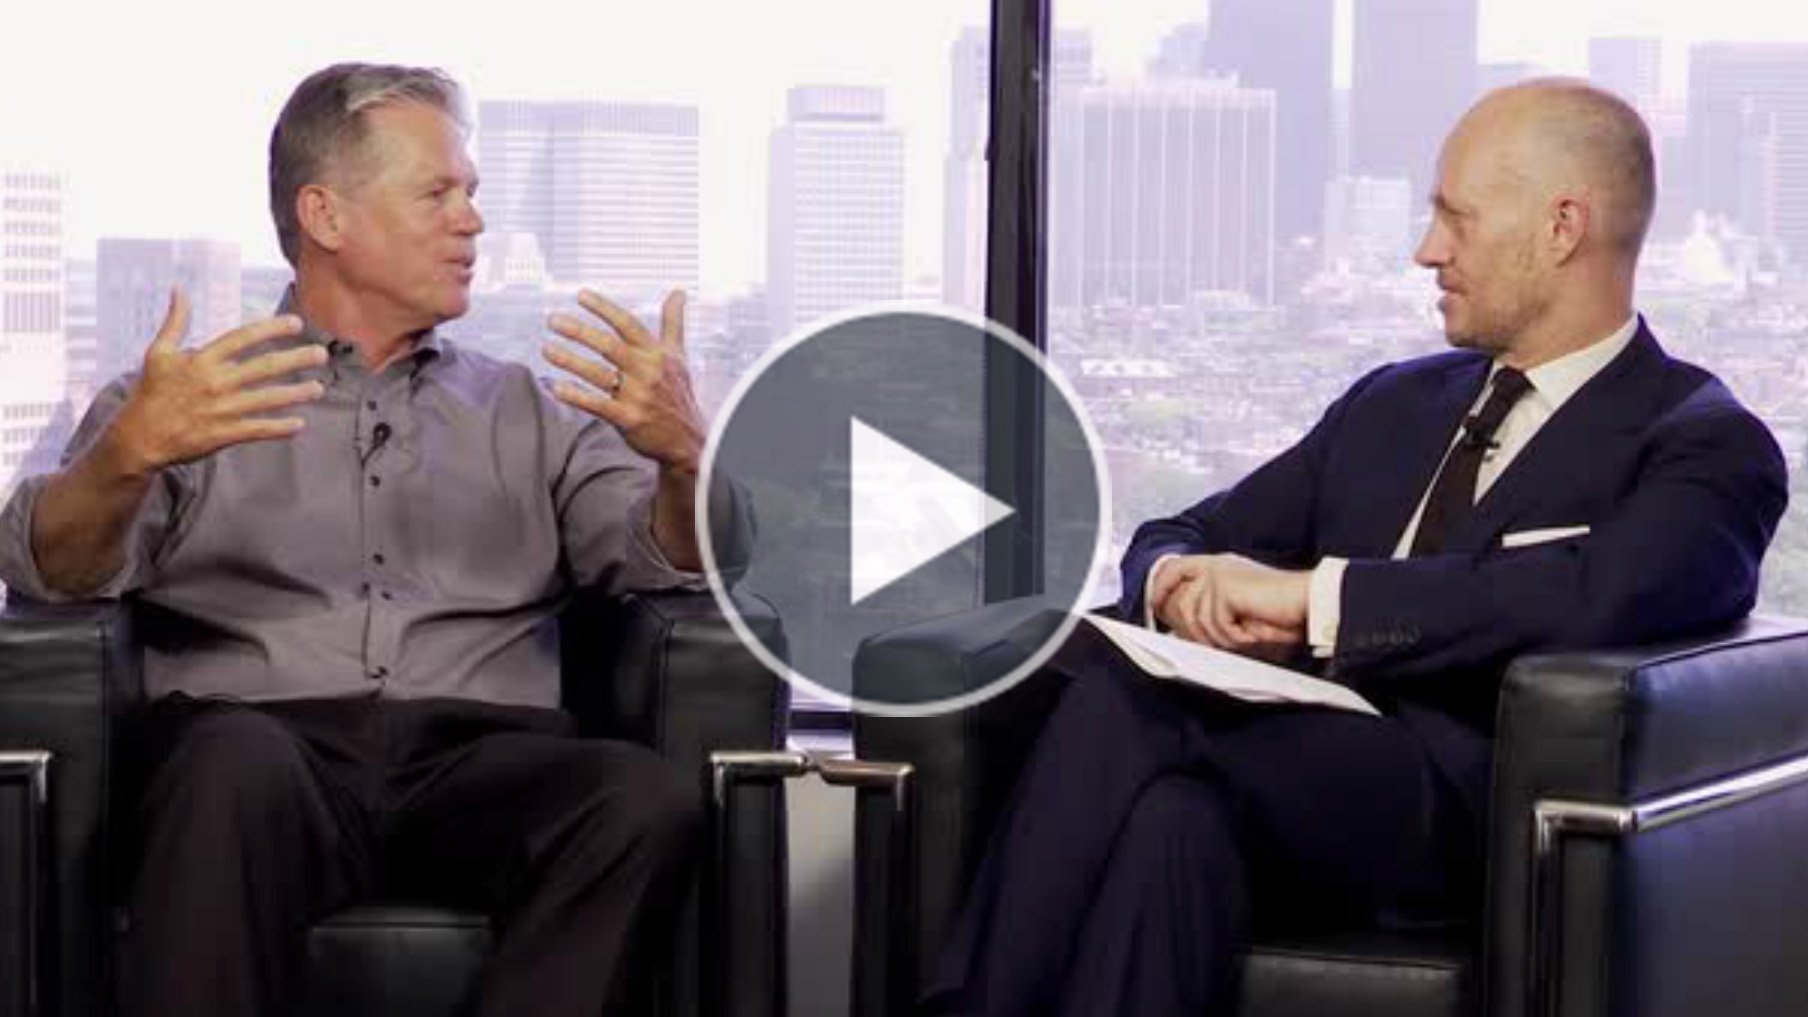 Get the big picture on Digital Performance Management from John Van Siclen, CEO of Dynatrace